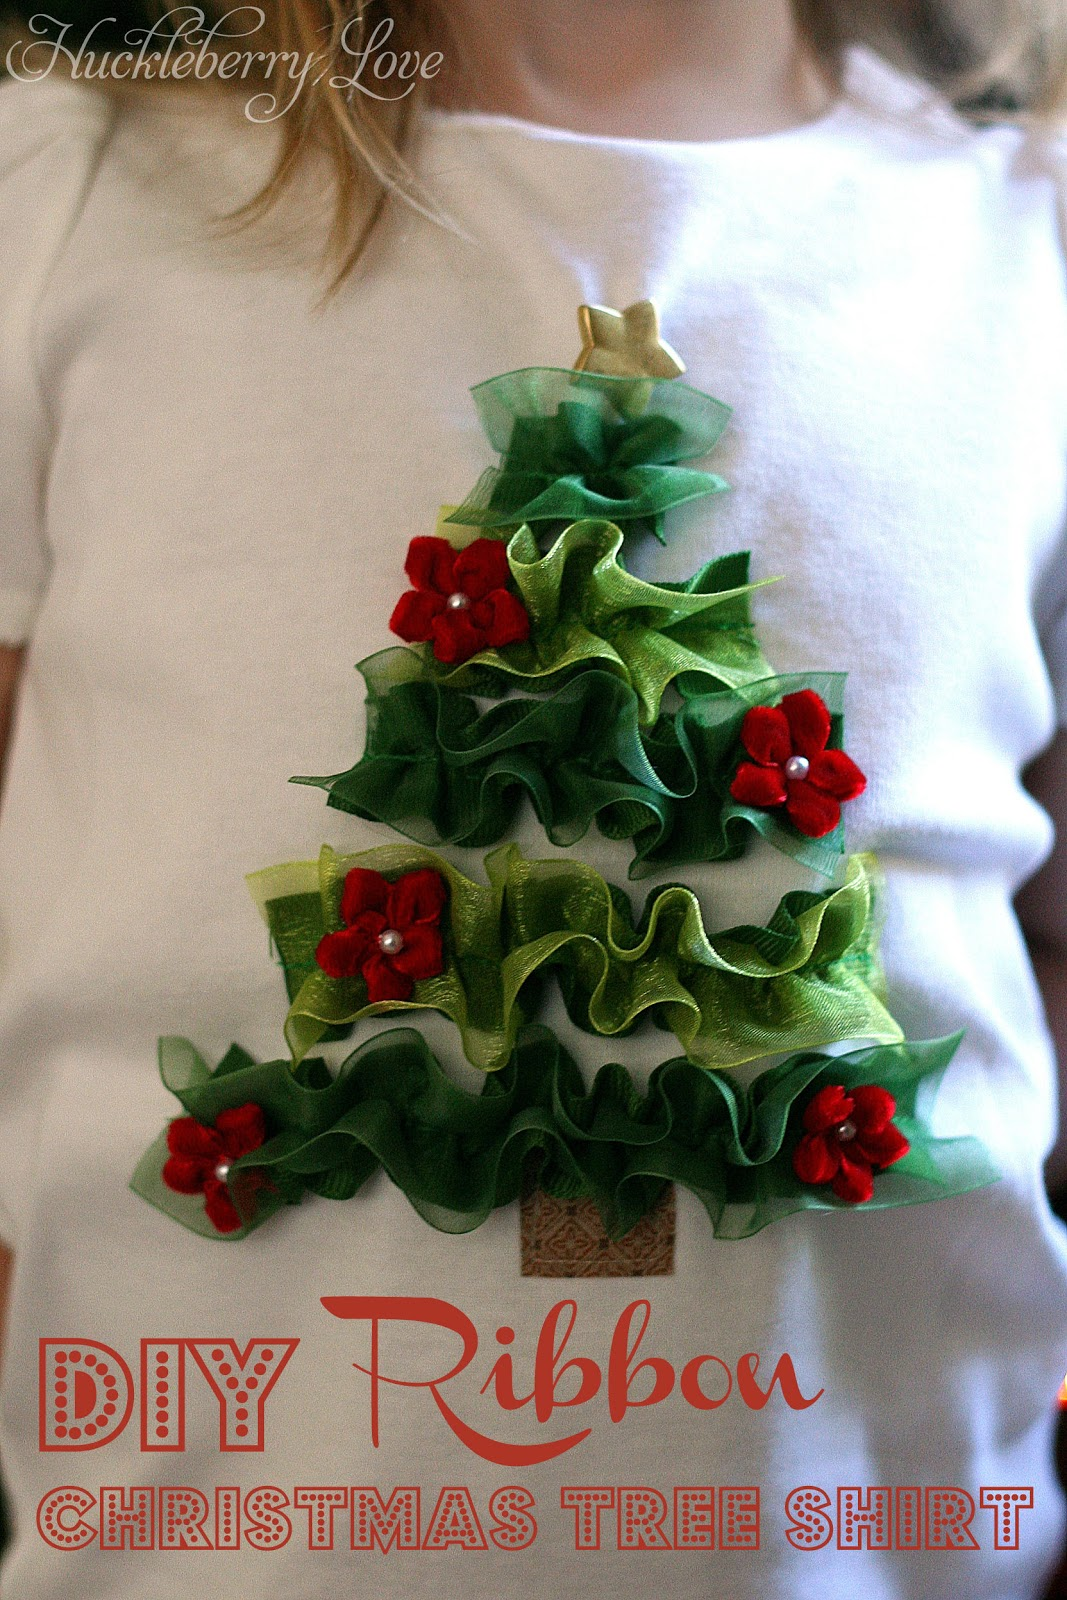 How to make ribbon christmas tree - I Love How This Turned Out And Am So Excited To Share It With You This Same Technique Can Be Used To Decorate A Pillow Or Even Turn A Boring White Apron